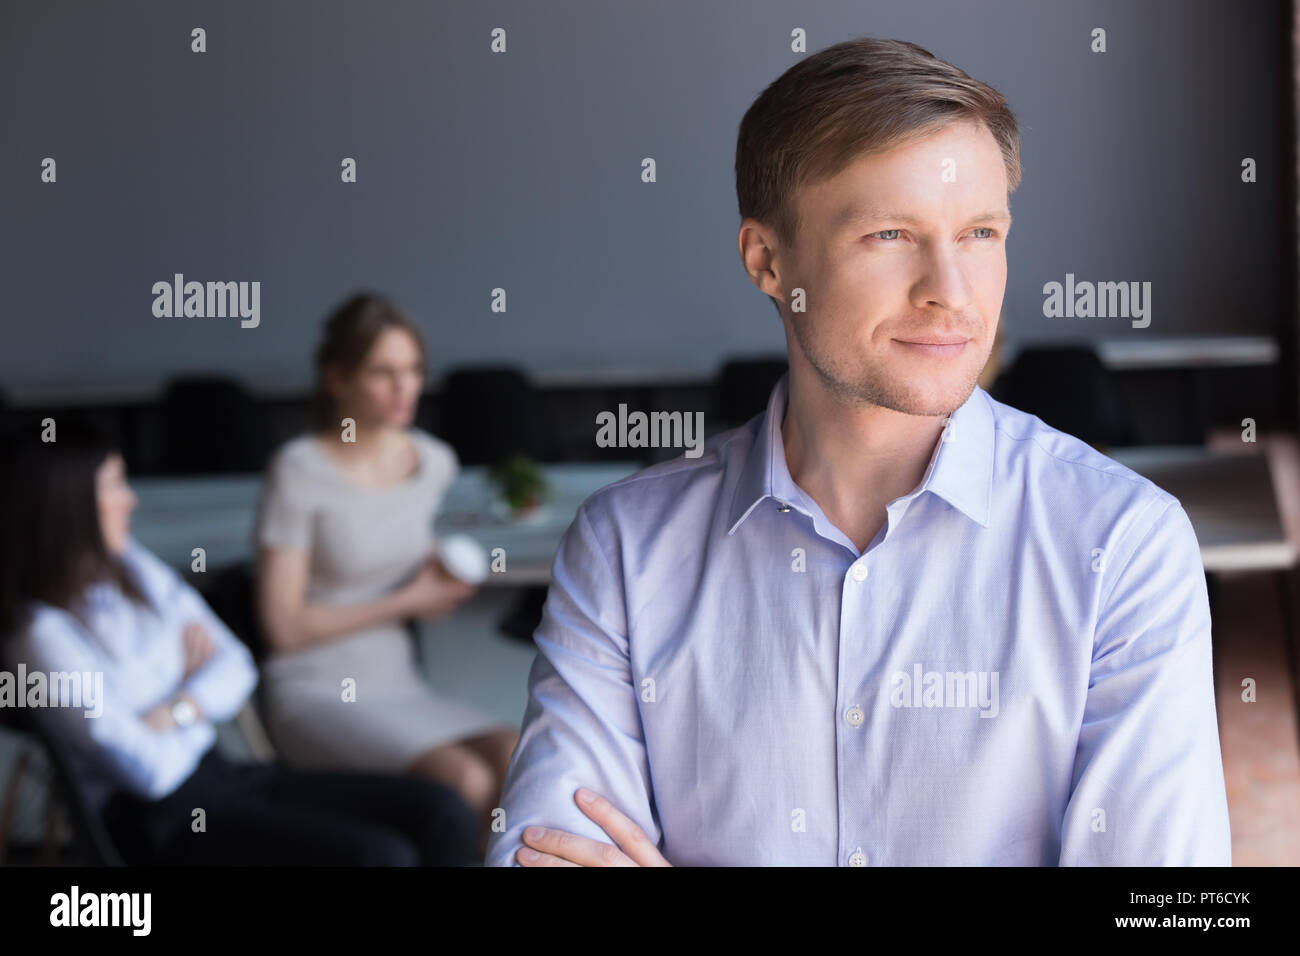 Confident thoughtful businessman team leader looking away dreami - Stock Image